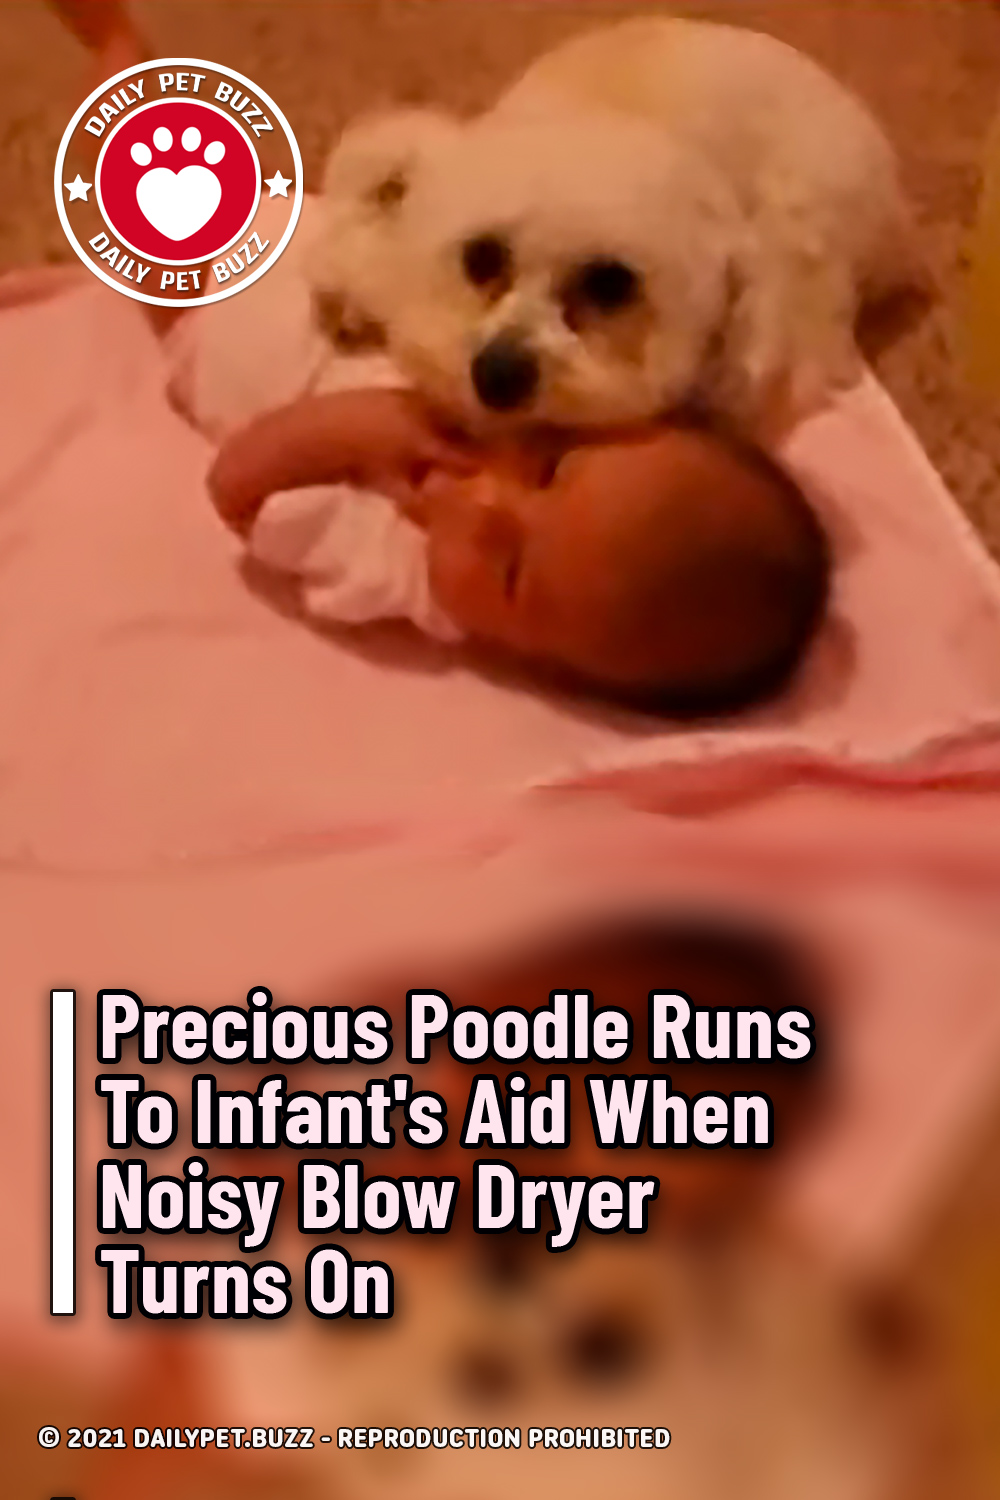 Precious Poodle Runs To Infant\'s Aid When Noisy Blow Dryer Turns On